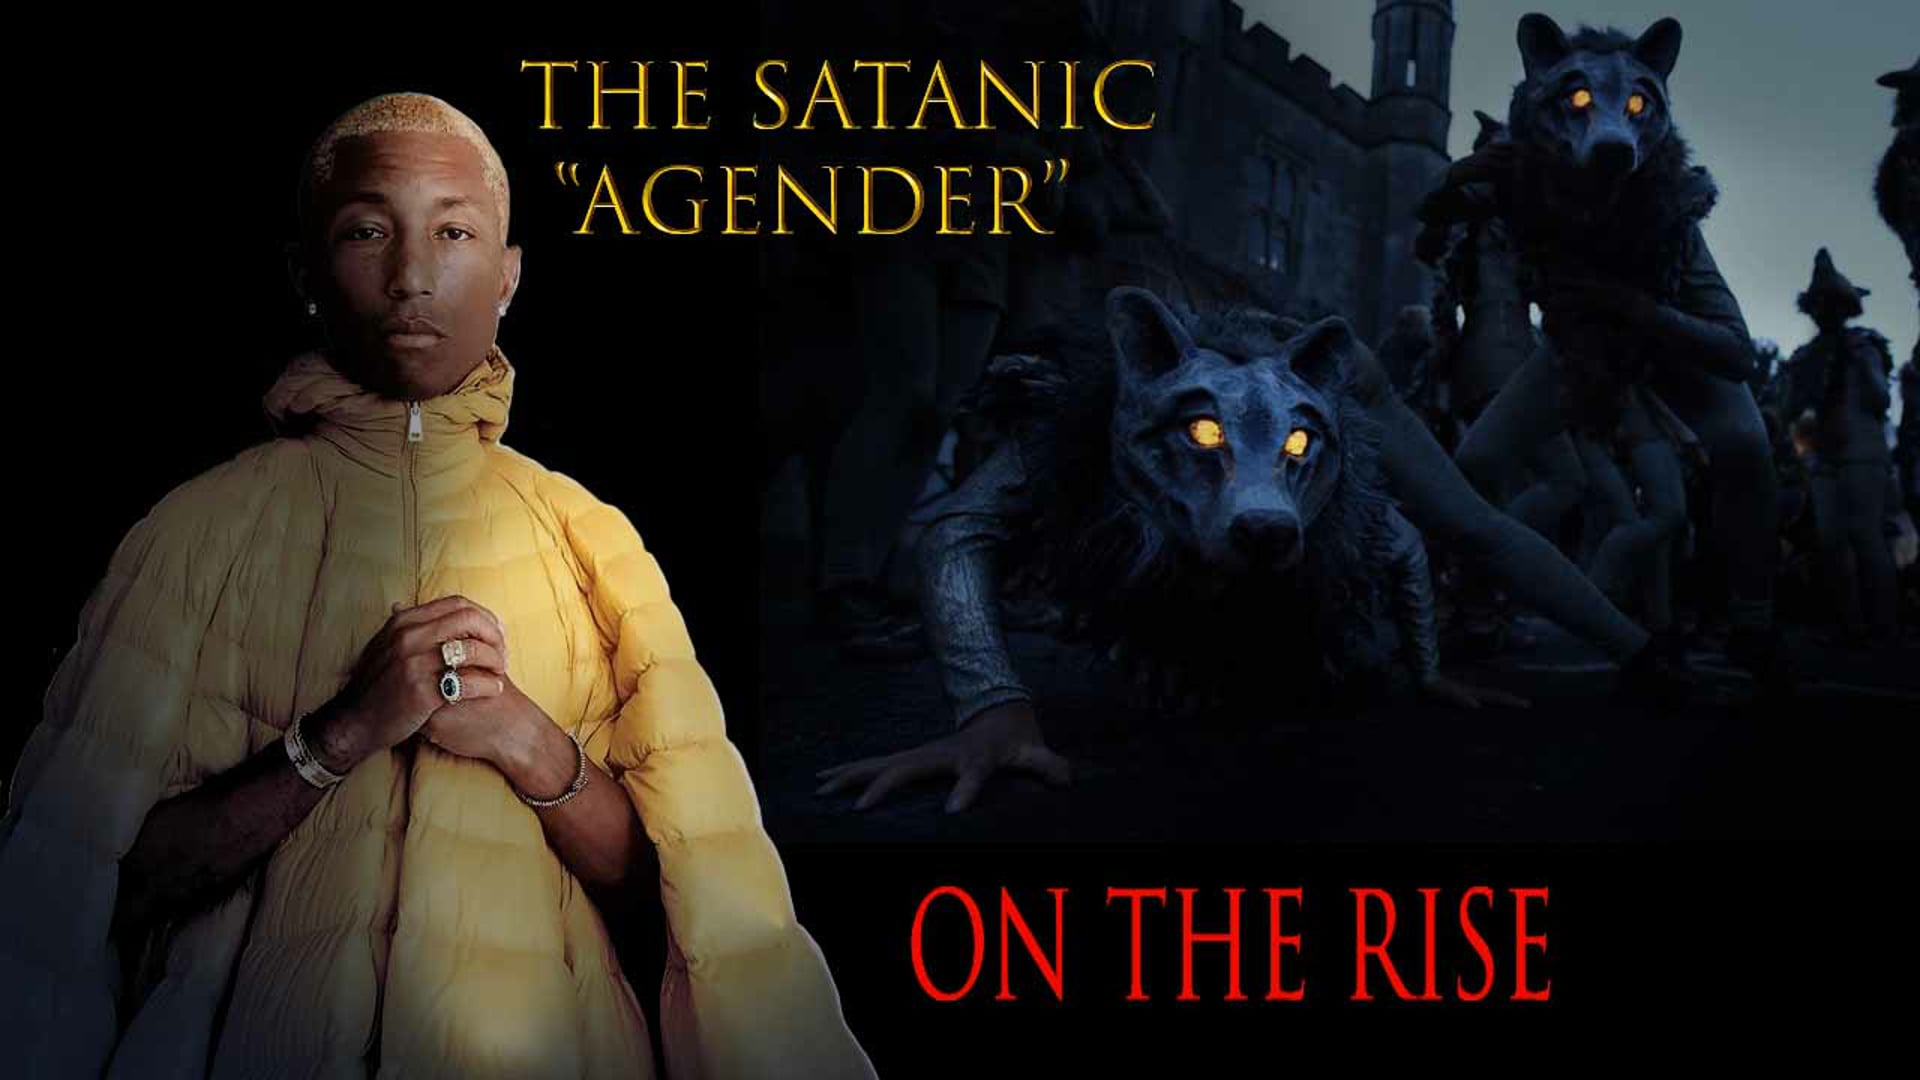 The Satanic Agender is on the Rise